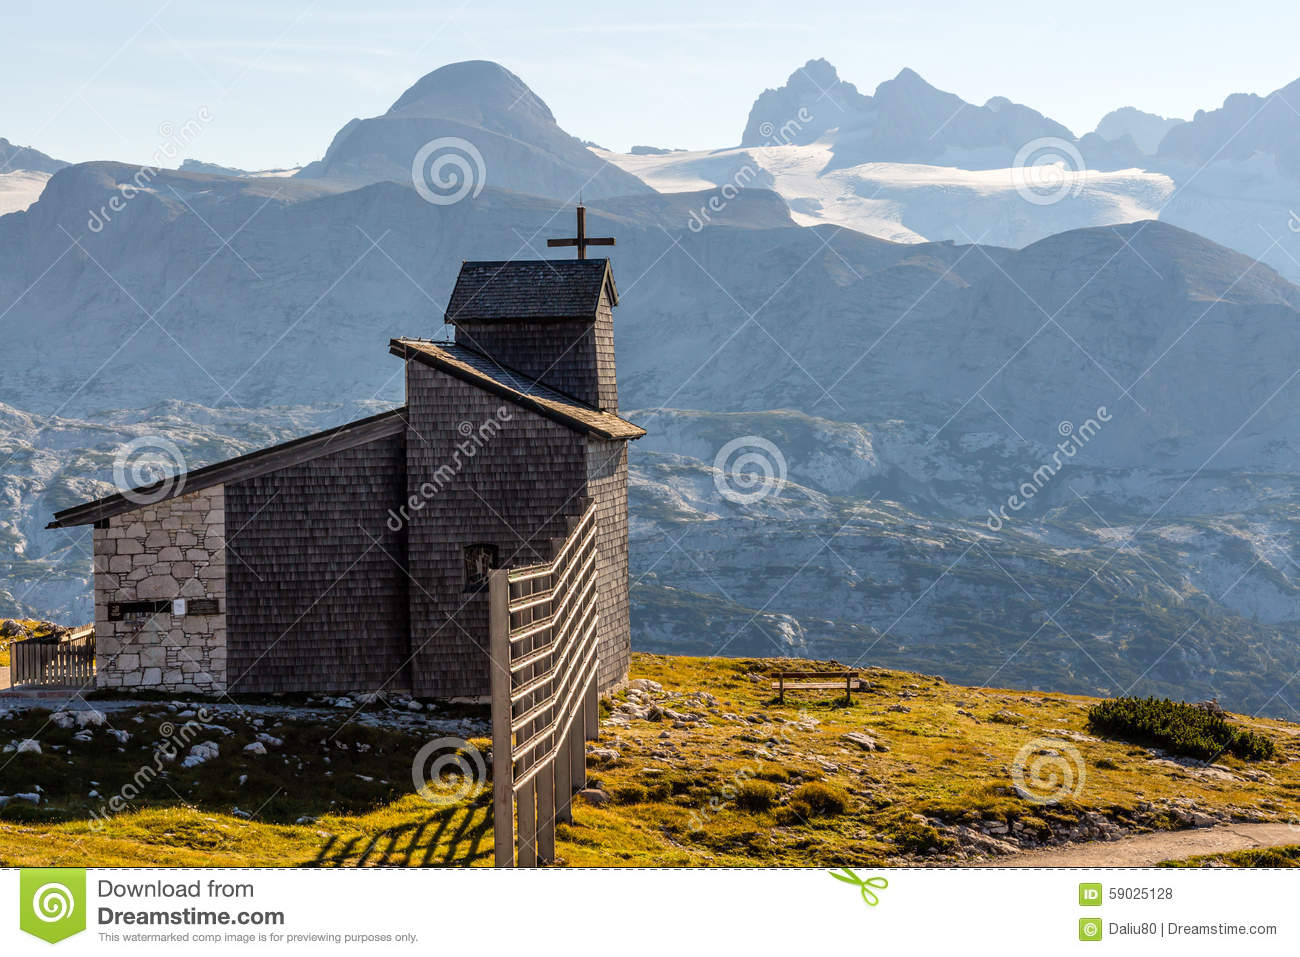 Chapel at the Dachstein on the path to the Five Fingers viewing platform